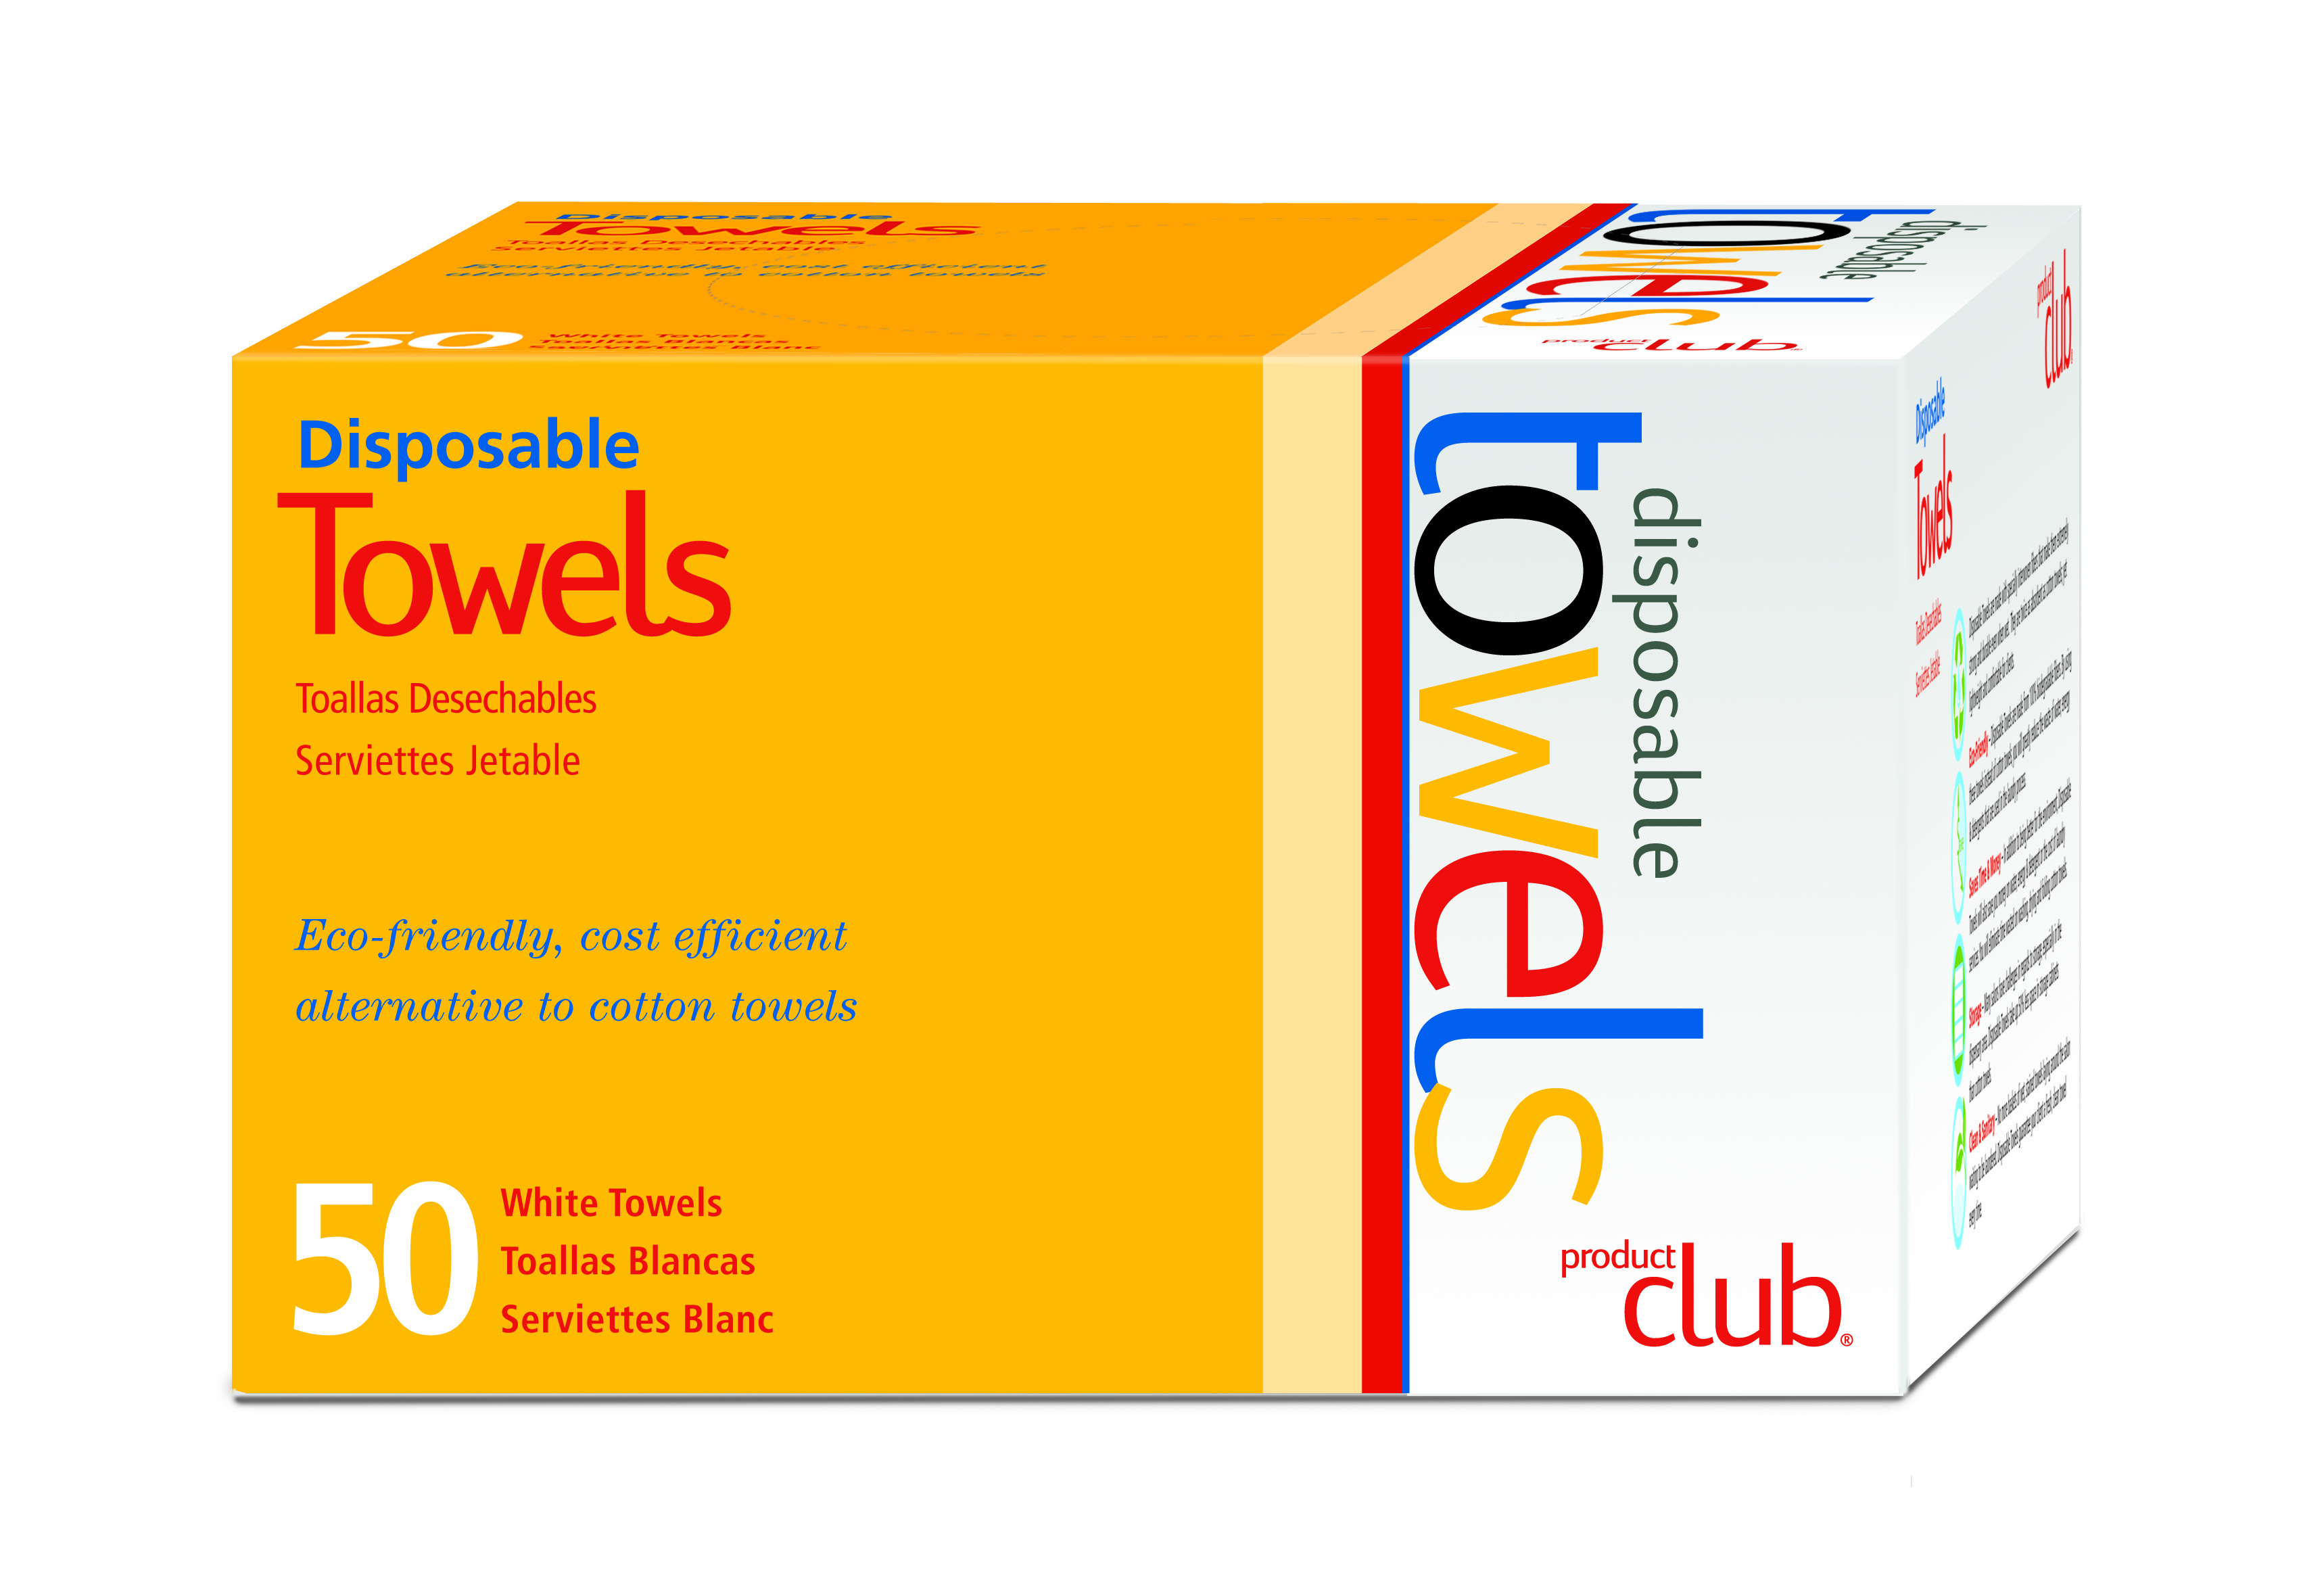 Product Club Disposable Towels